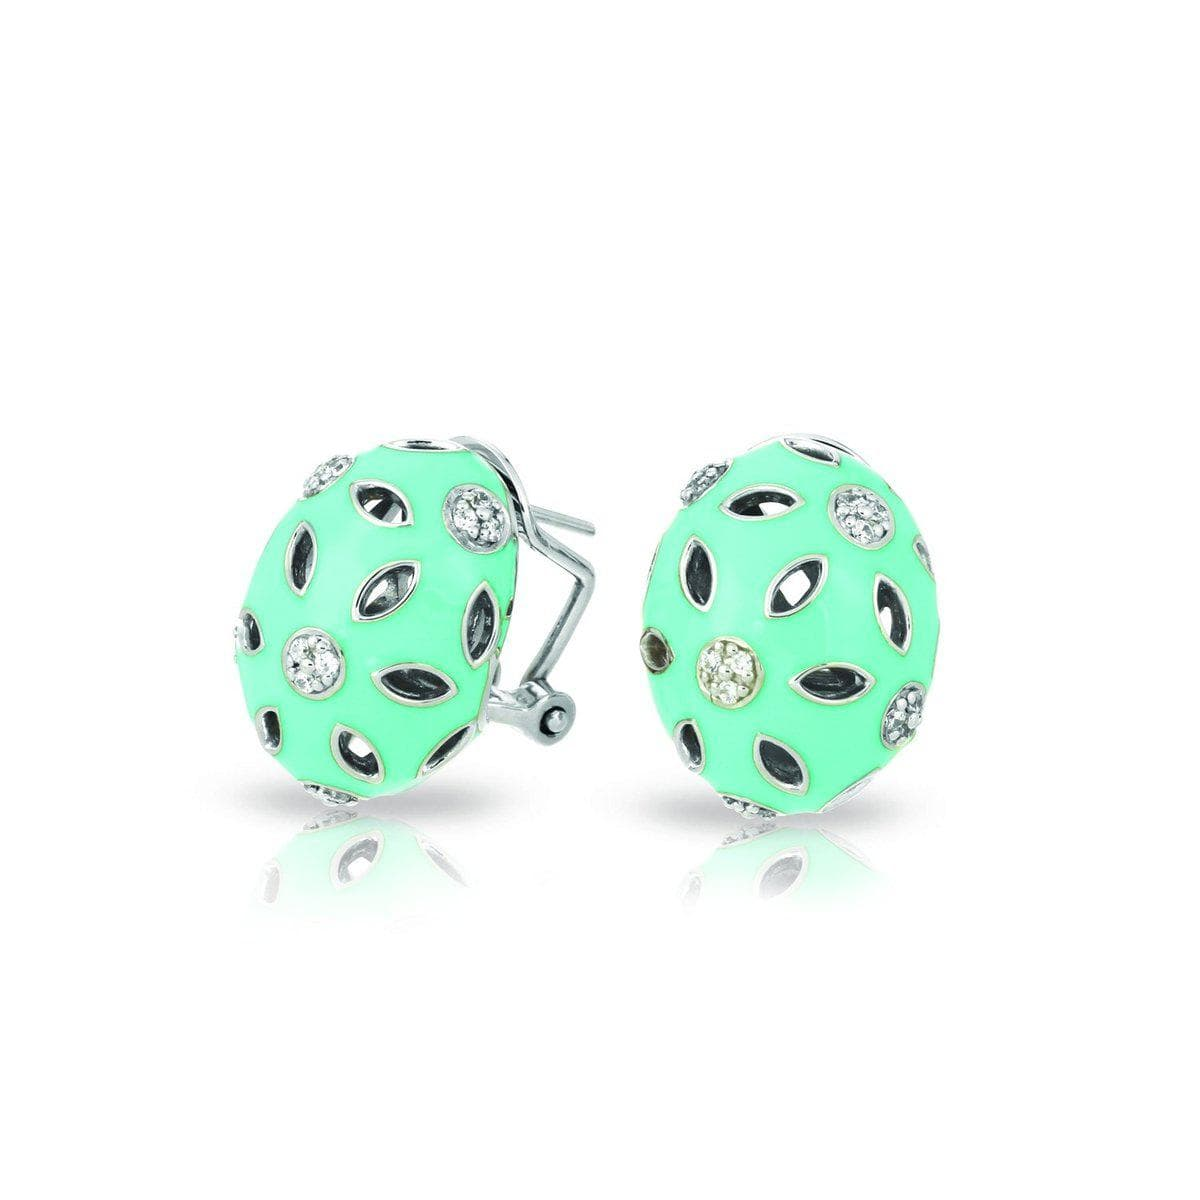 Charlotte Aqua Earrings-Belle Etoile-Renee Taylor Gallery